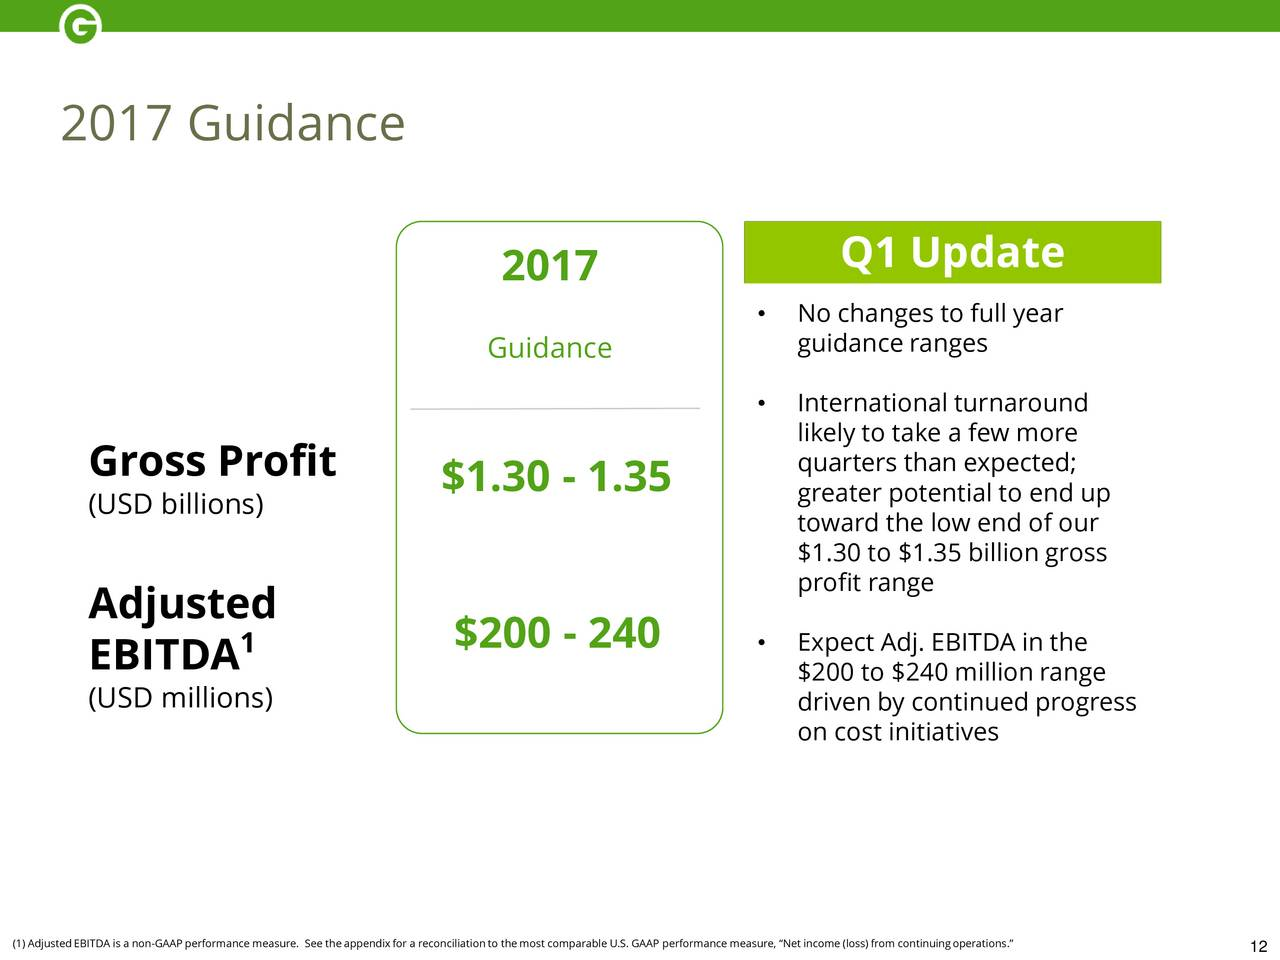 Groupon inc 2017 q1 results earnings call slides groupon groupon inc 2017 q1 results earnings call slides groupon inc nasdaqgrpn seeking alpha buycottarizona Image collections